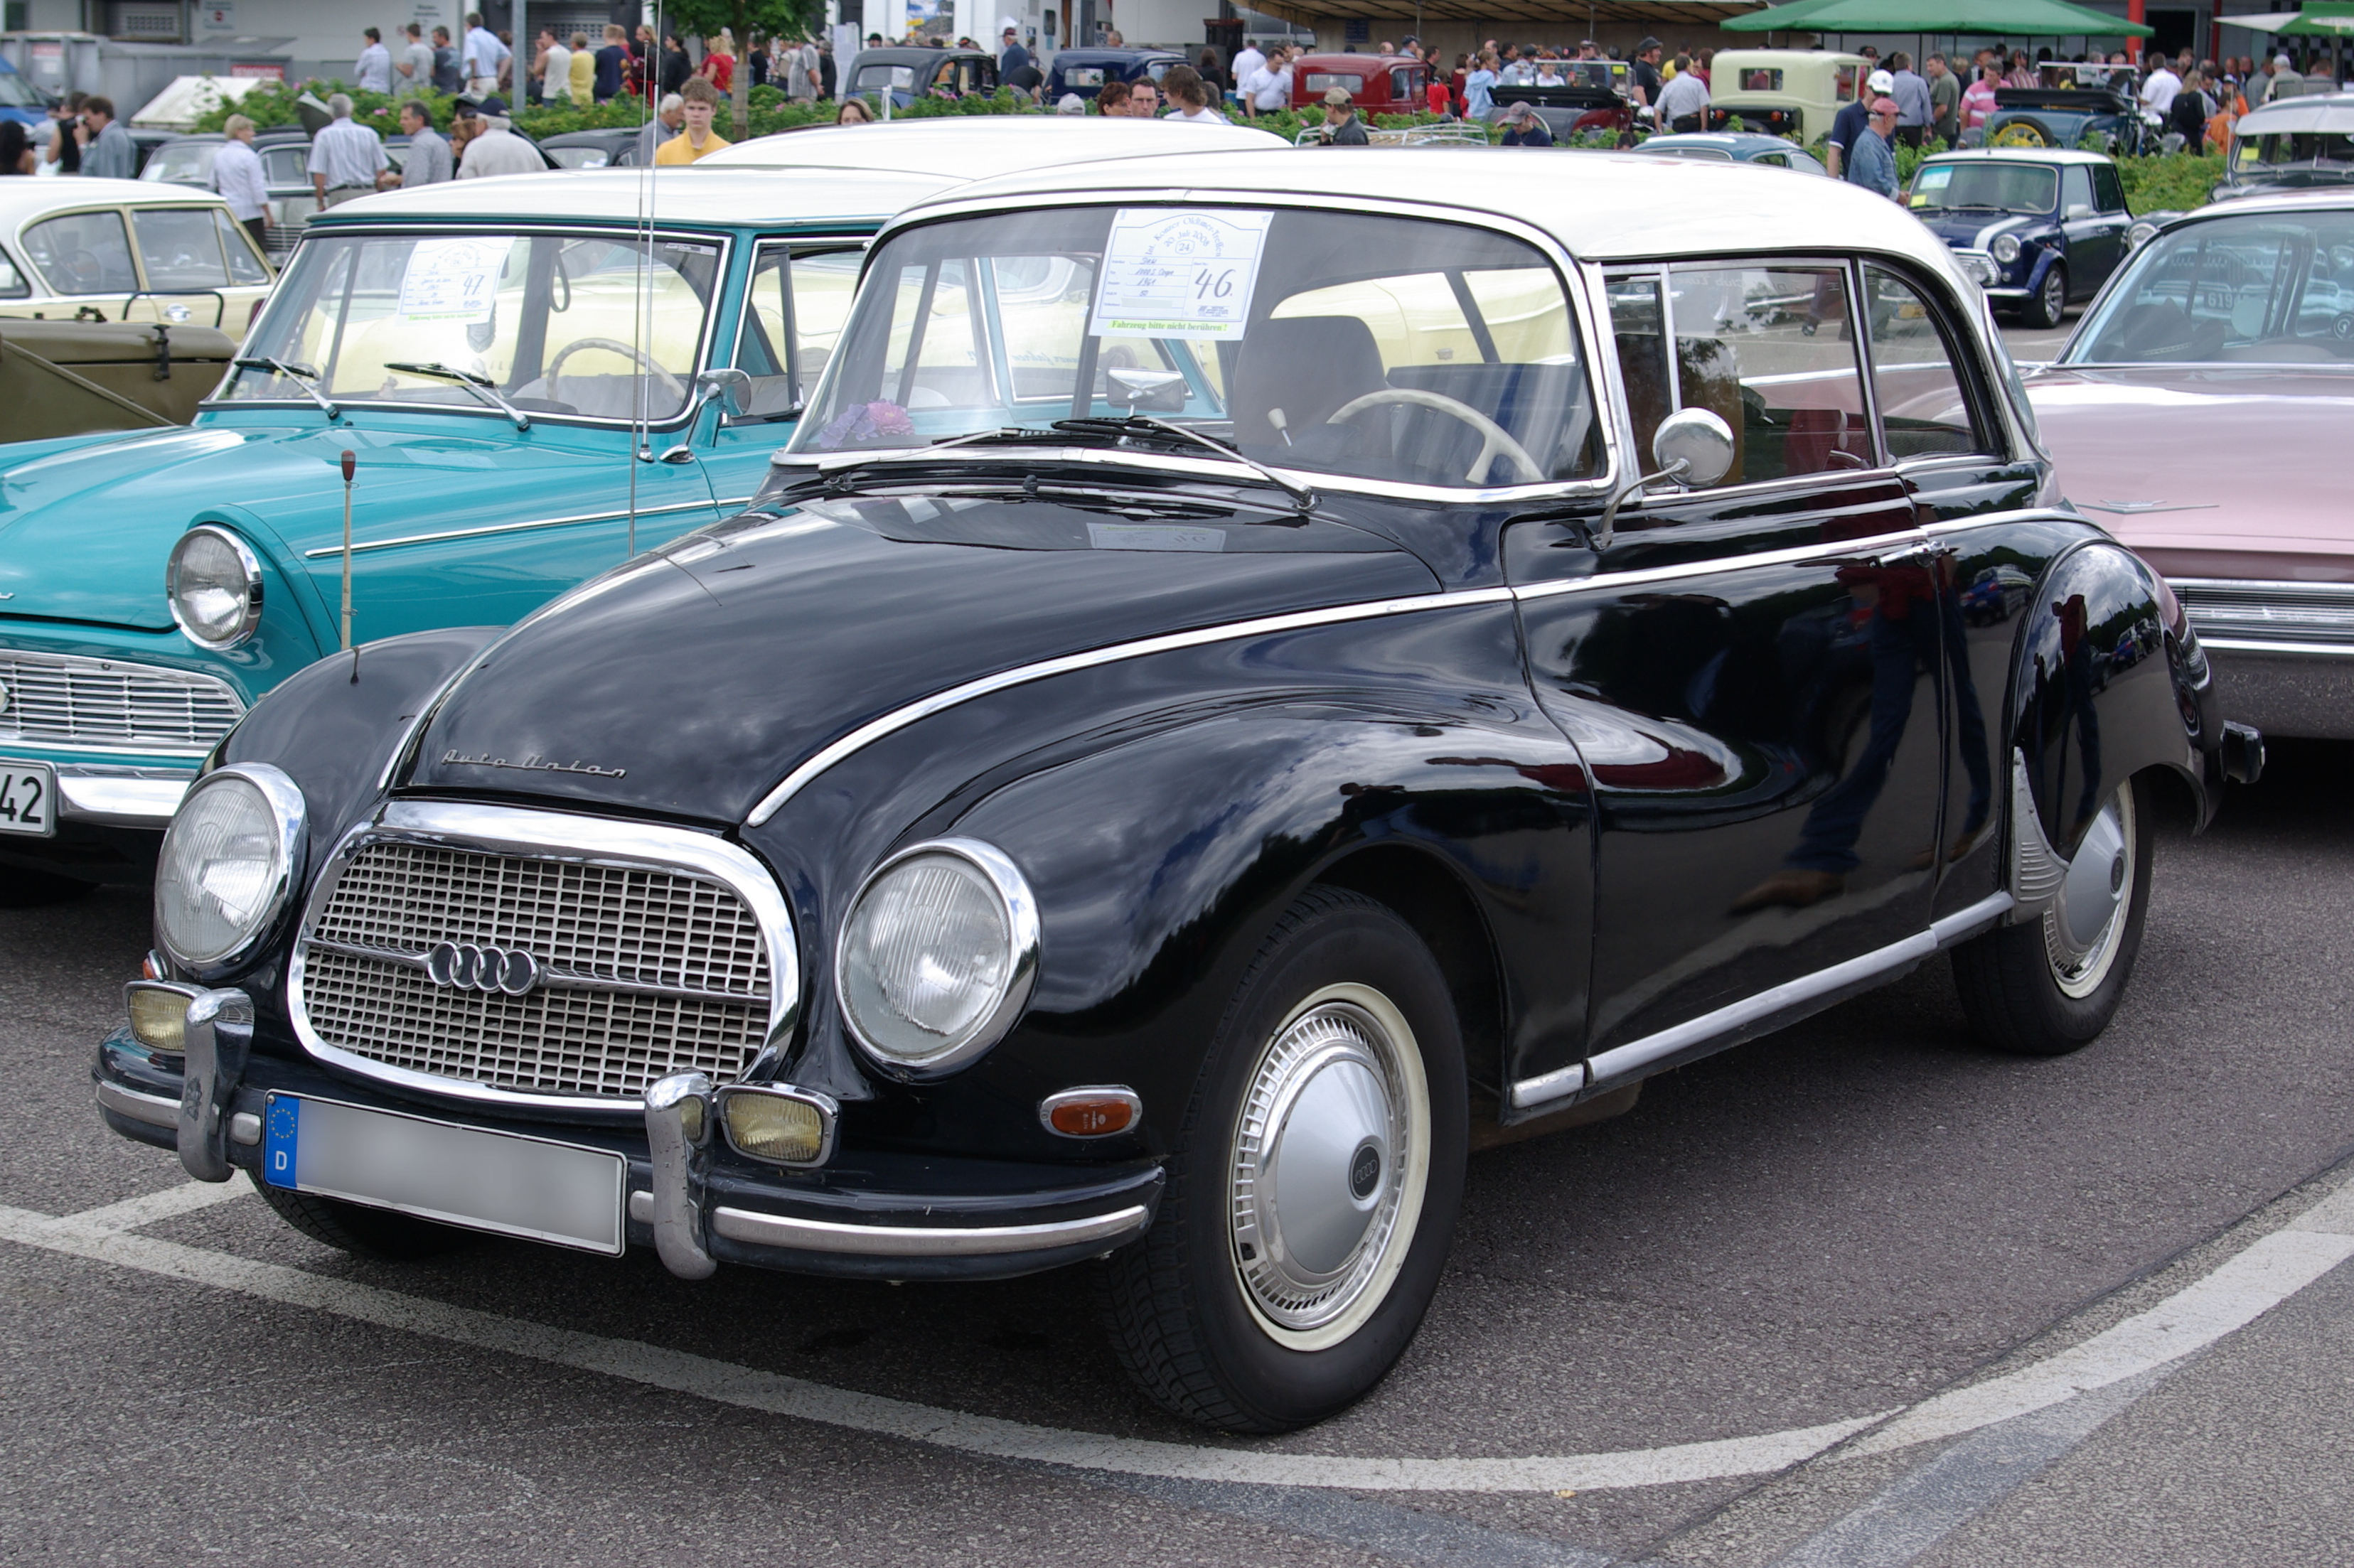 Dkw coupe photo - 1